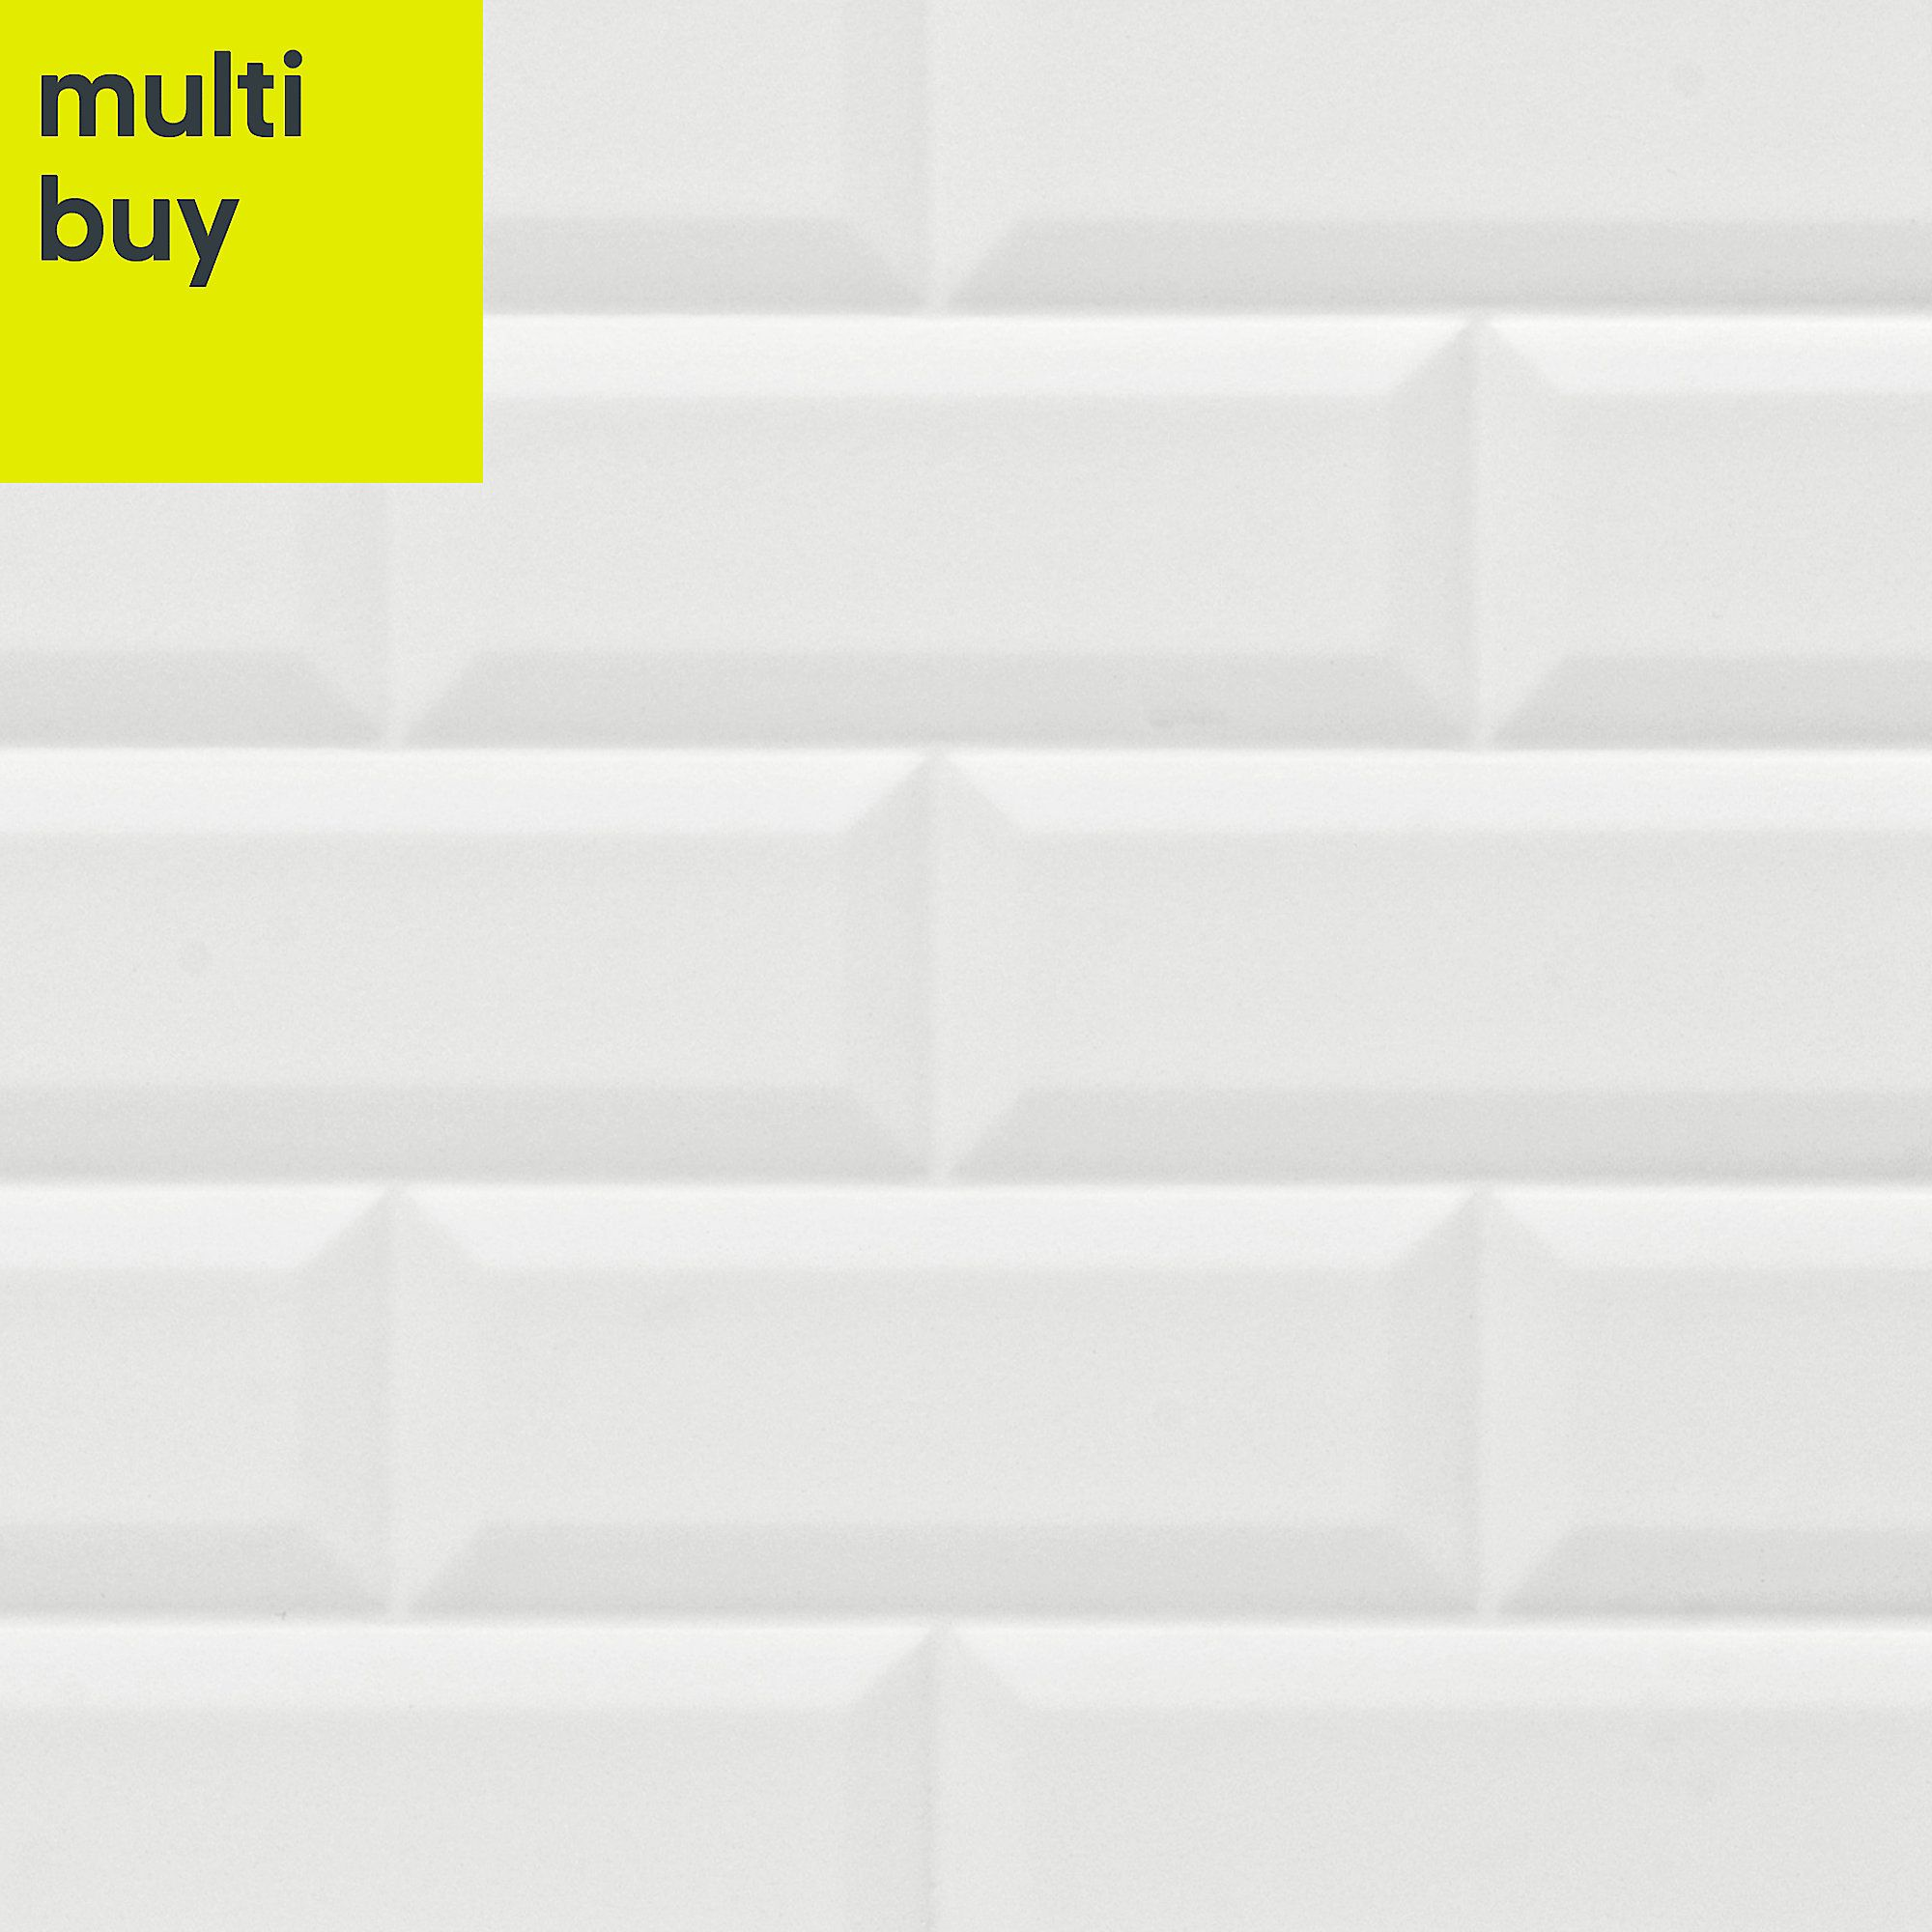 Millenium White Gloss Brick Effect Ceramic Wall Tile Pack Of 6 L 600mm W 300mm Ceramic Wall Tiles Wall Tiles White Gloss